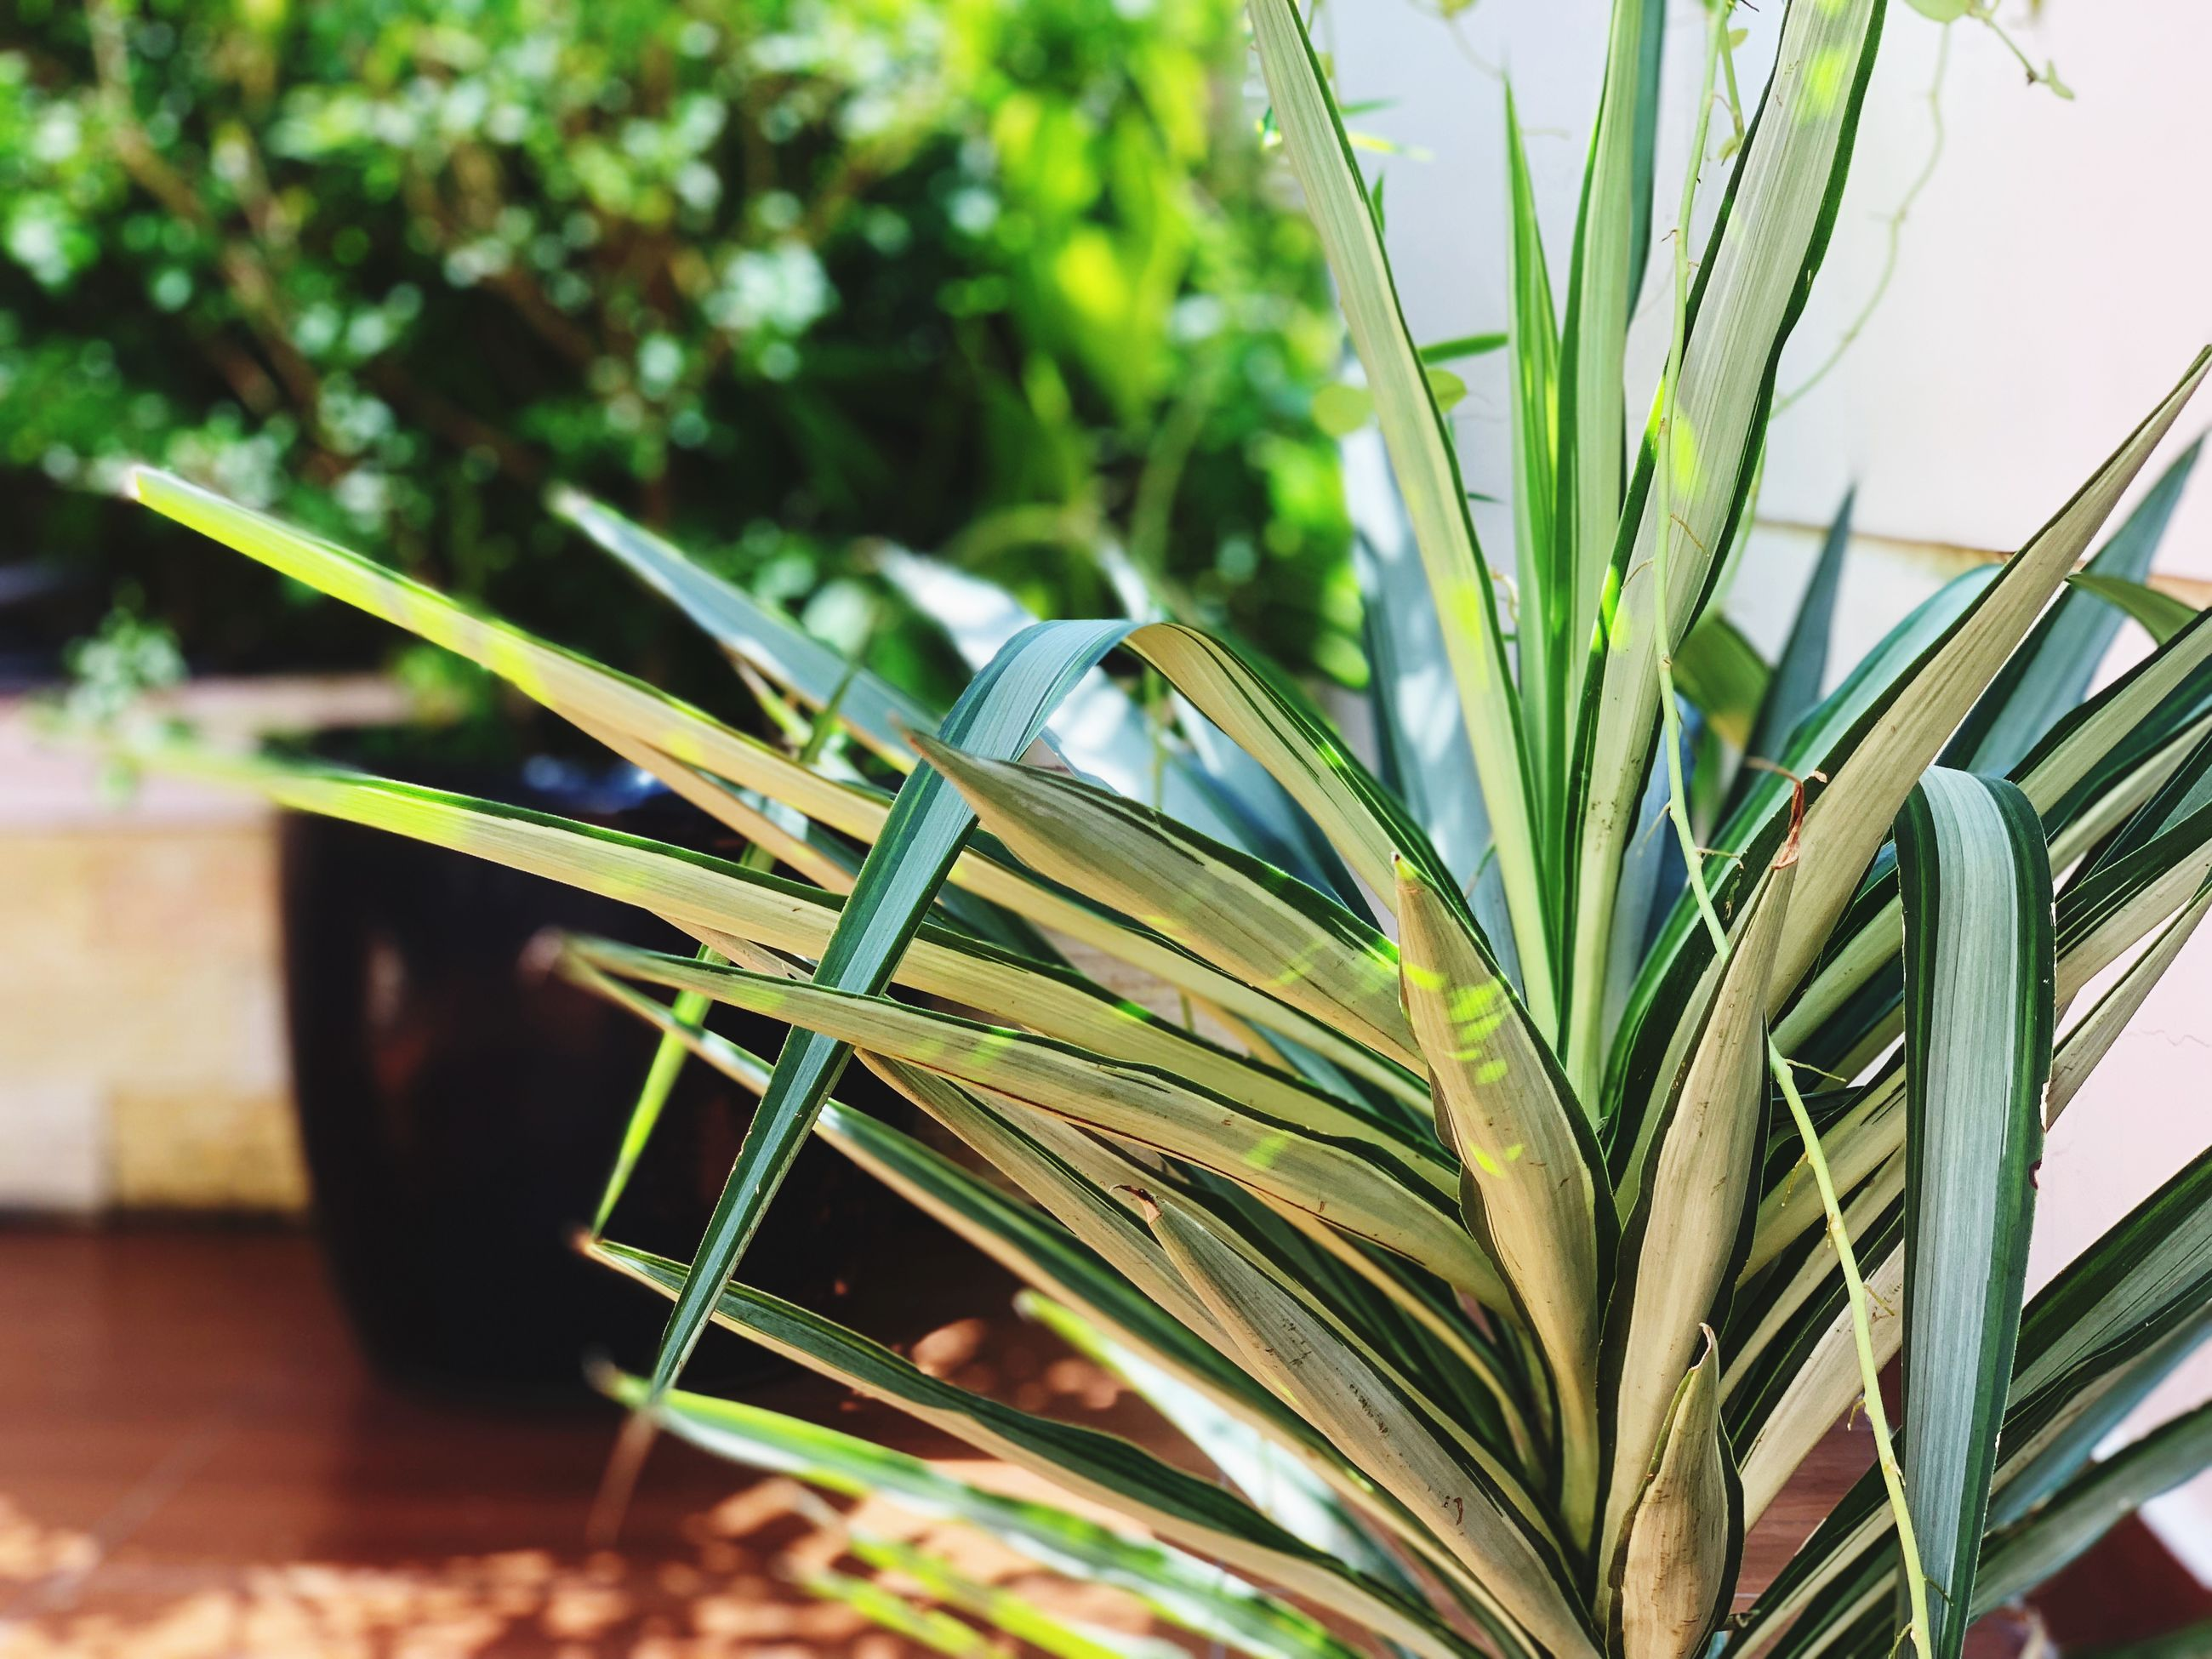 green color, plant, growth, focus on foreground, close-up, leaf, plant part, no people, nature, table, selective focus, day, beauty in nature, freshness, indoors, still life, potted plant, grass, agriculture, blade of grass, leaves